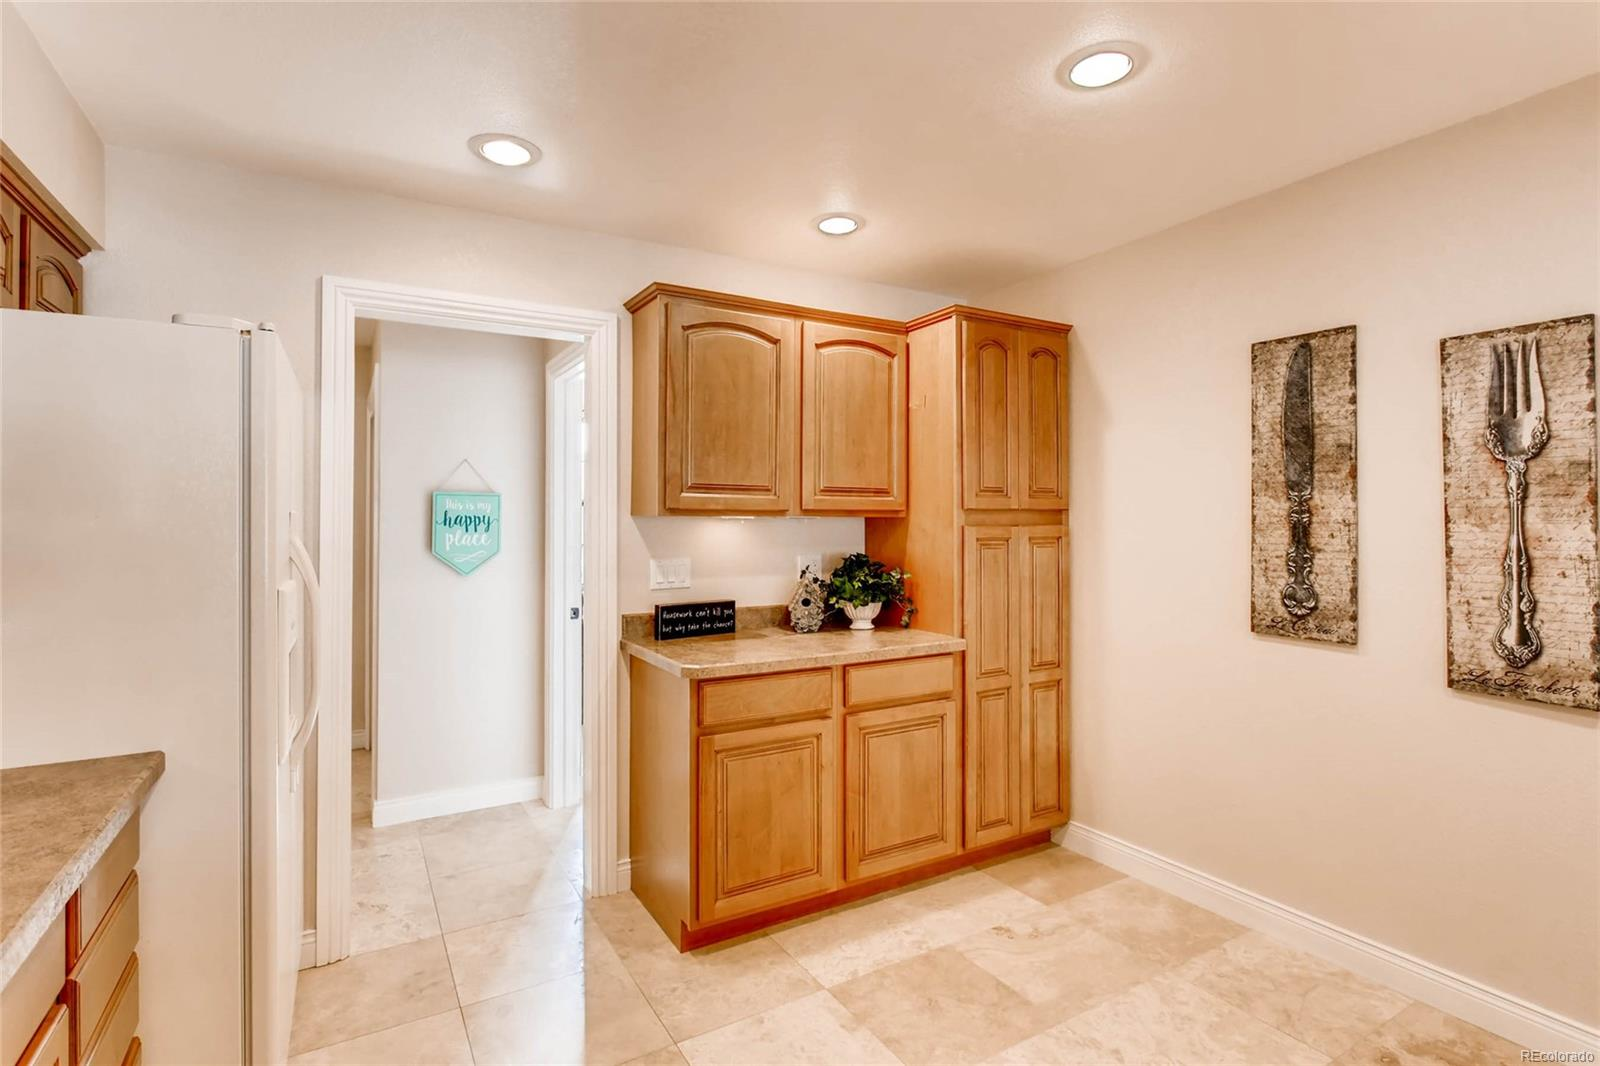 MORE KITCHEN CABINETS AND PANTRY, WITH SPACE FOR A BREAKFAST NOOK IN THE KITCHEN